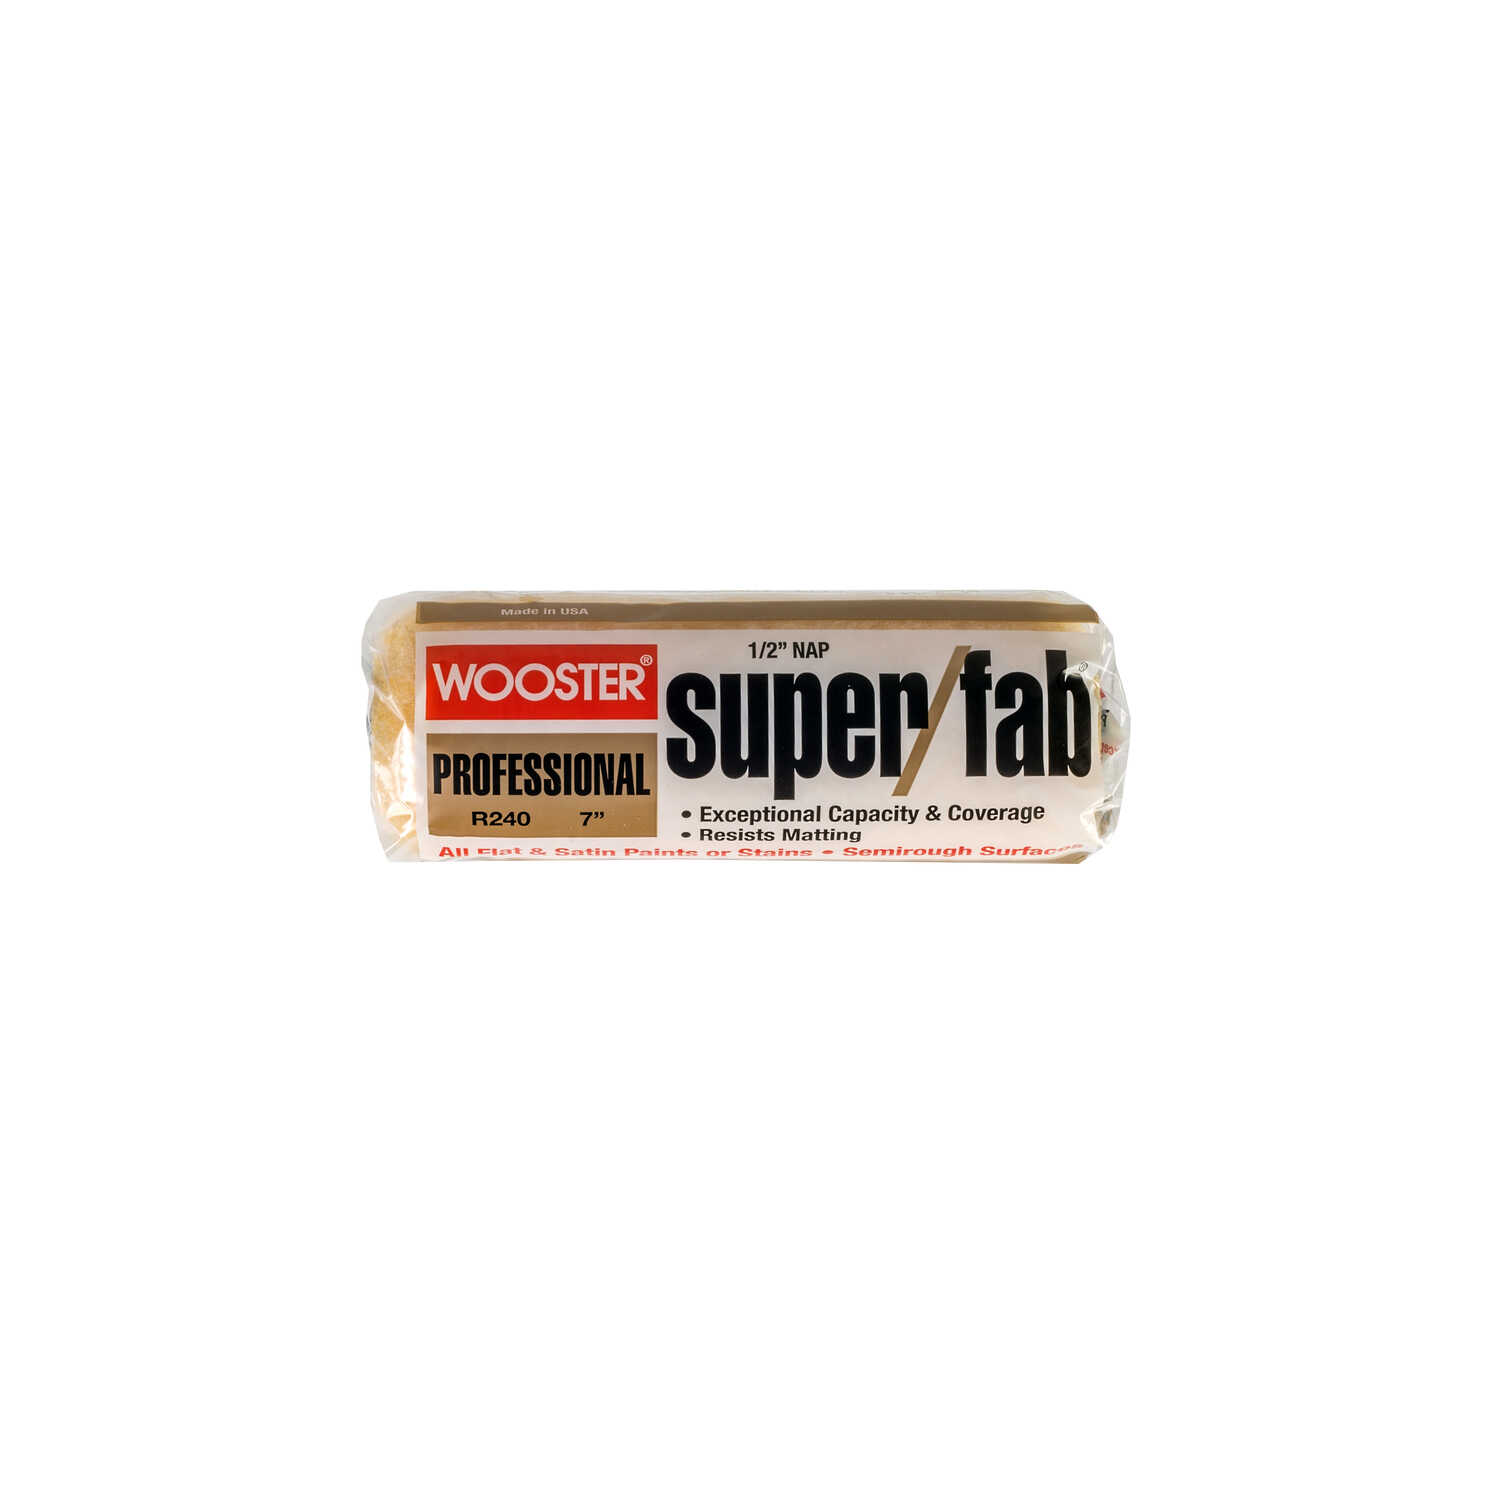 Wooster  Super/Fab  Knit  1/2 in.  x 7 in. W Regular  Paint Roller Cover  For Semi-Rough Surfaces 1